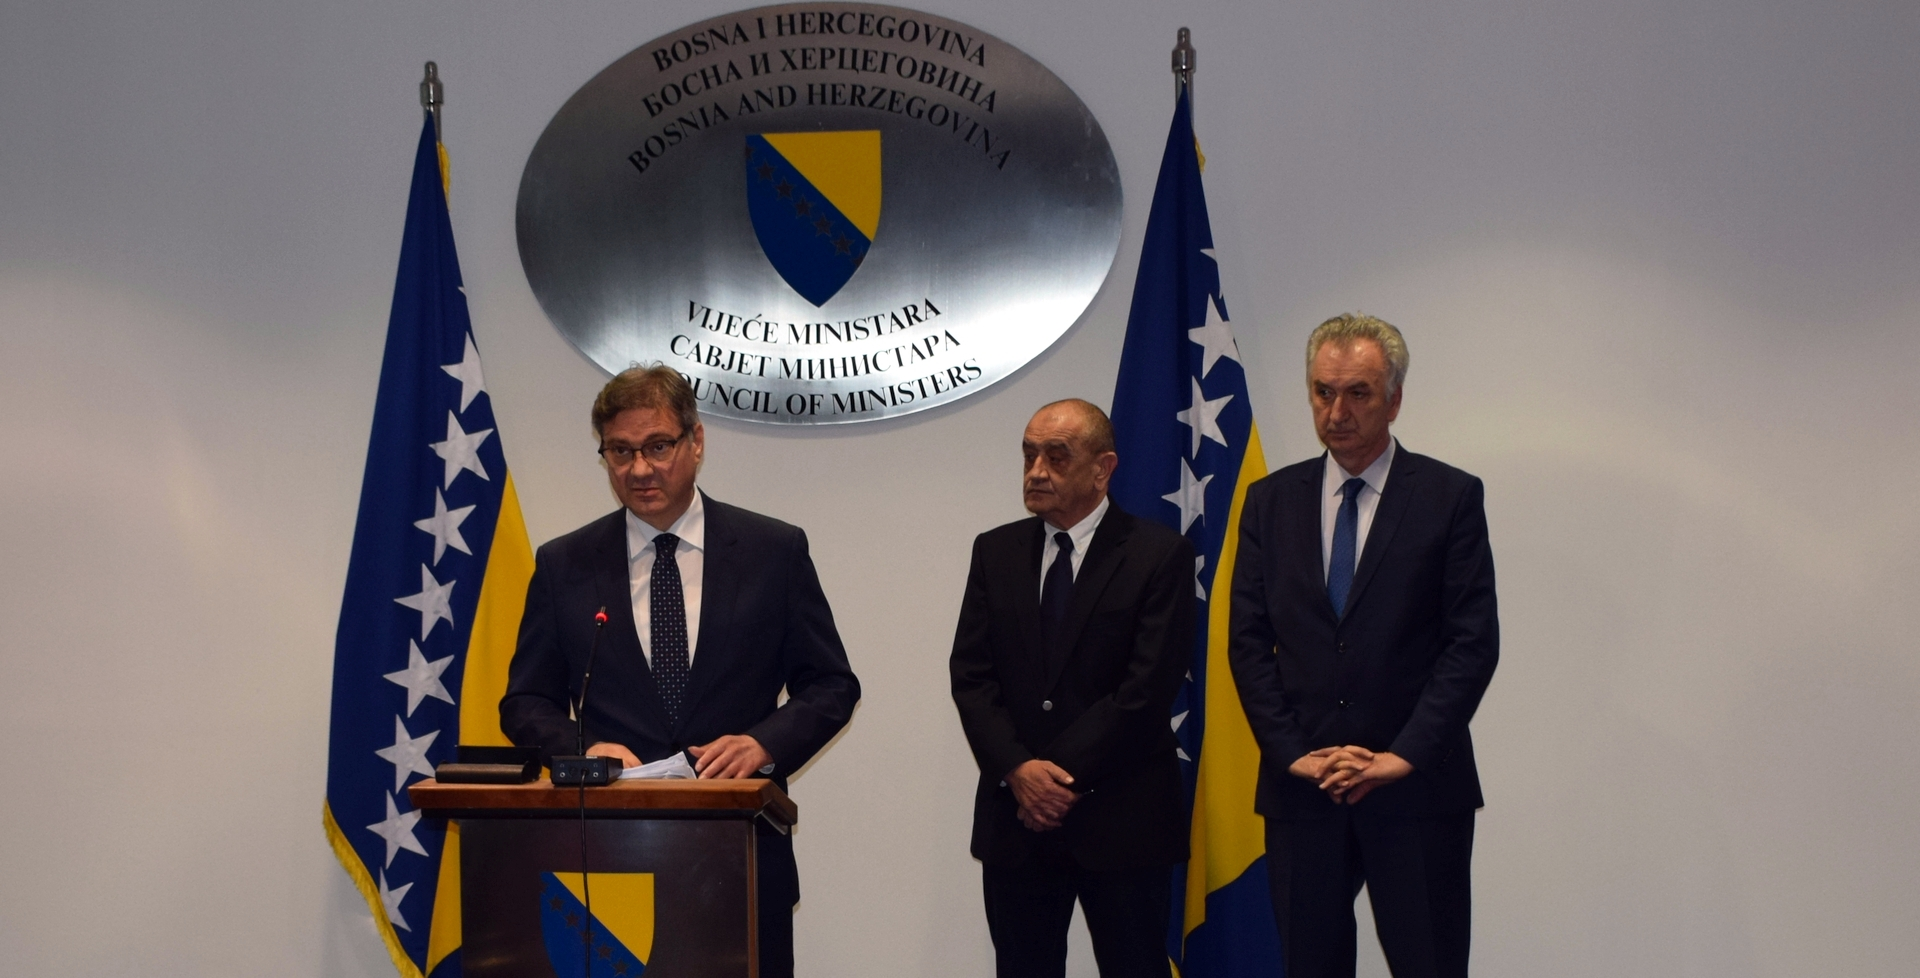 BiH Council of Ministers decision gives BiH farmers access to EU funds